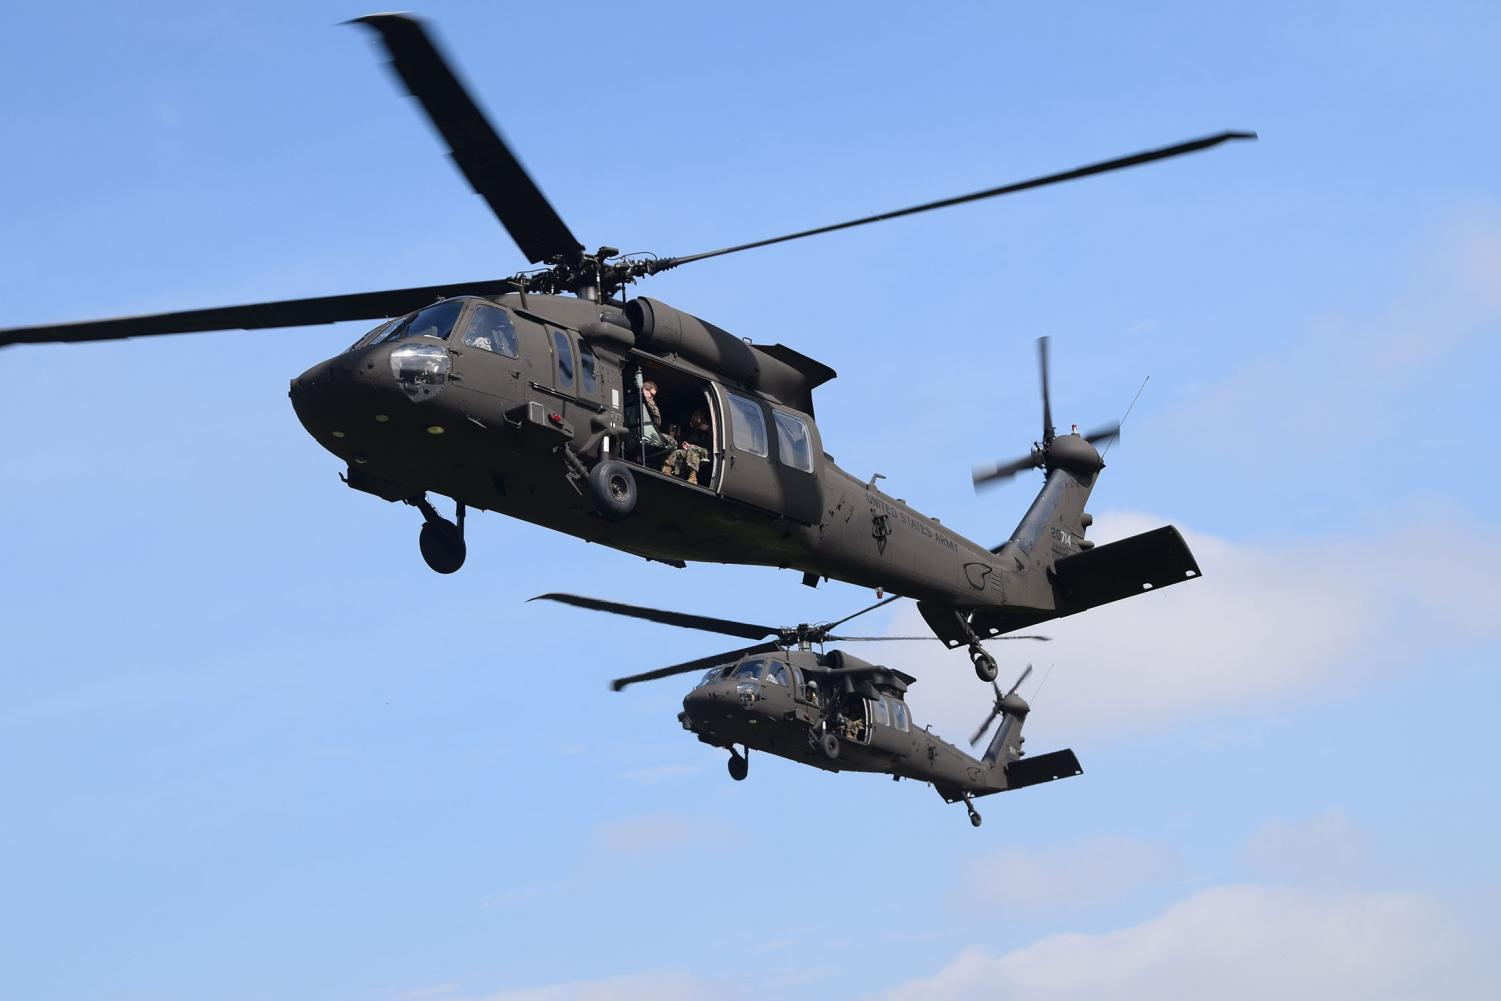 Both+Black+Hawk+helicopters+take+off+in+unison+carrying+roughly+15+cadets+a+piece.+